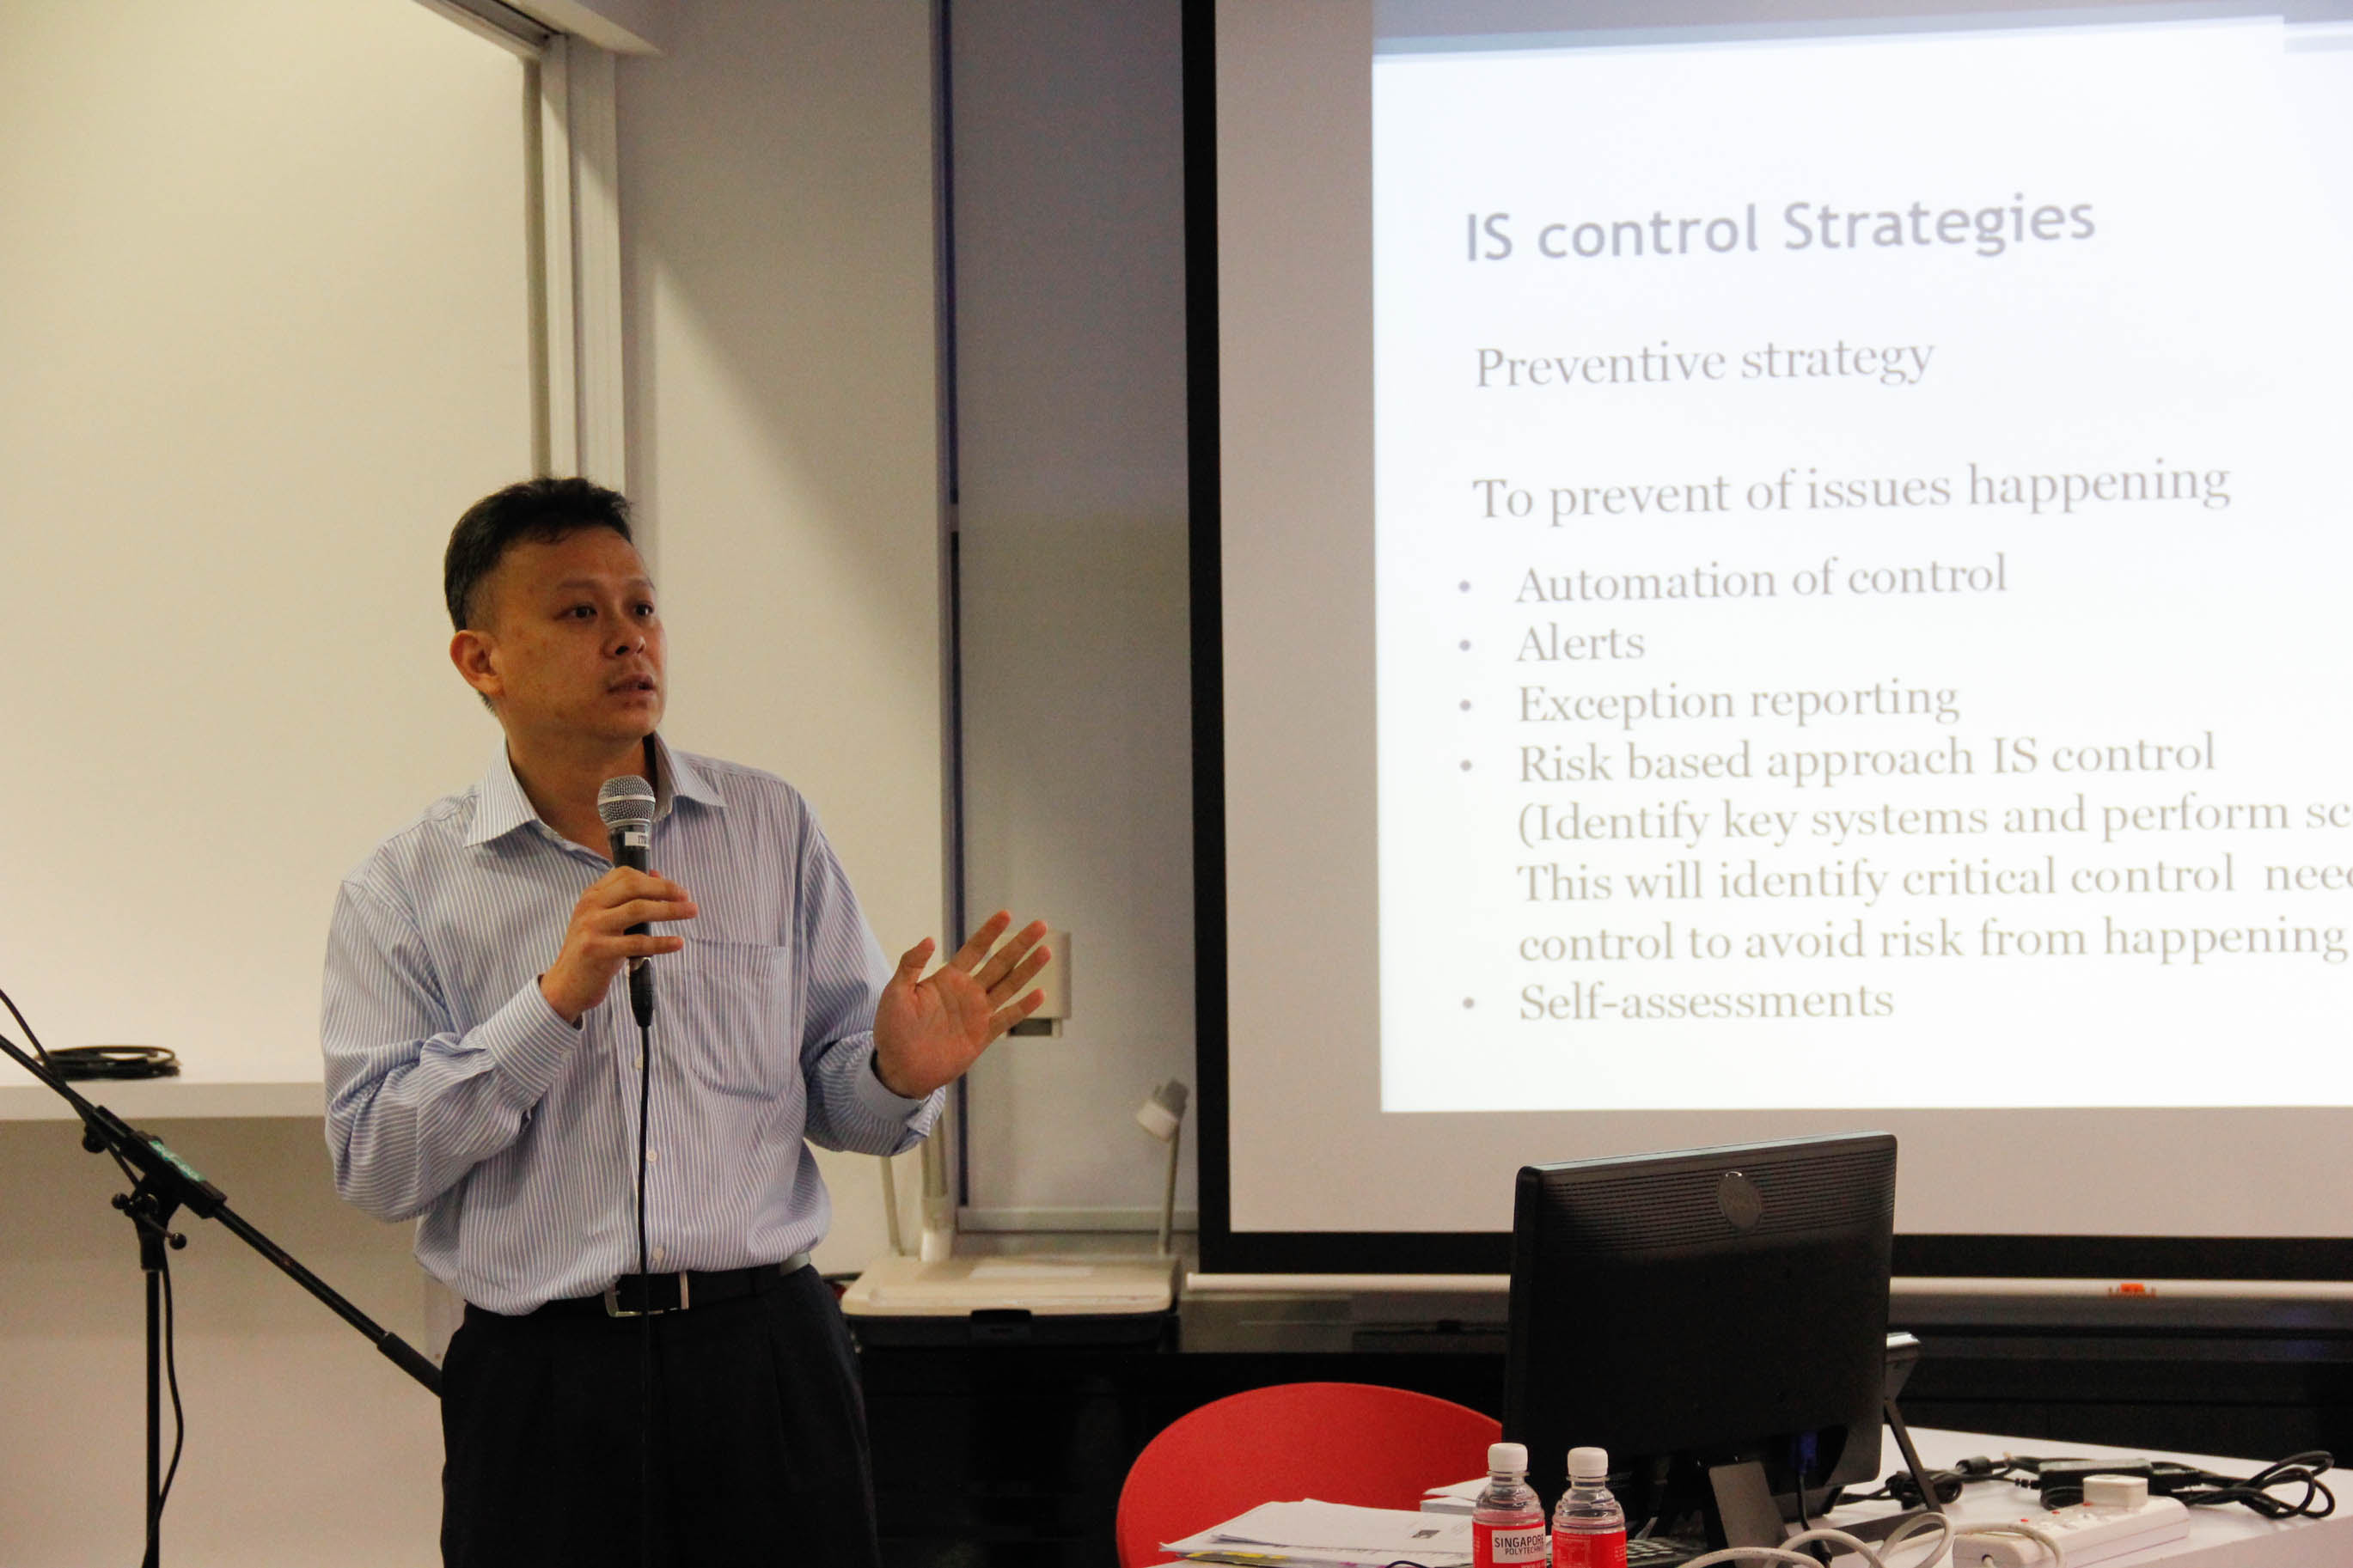 Mr Ho explaining on more details about Information System Control Strategies